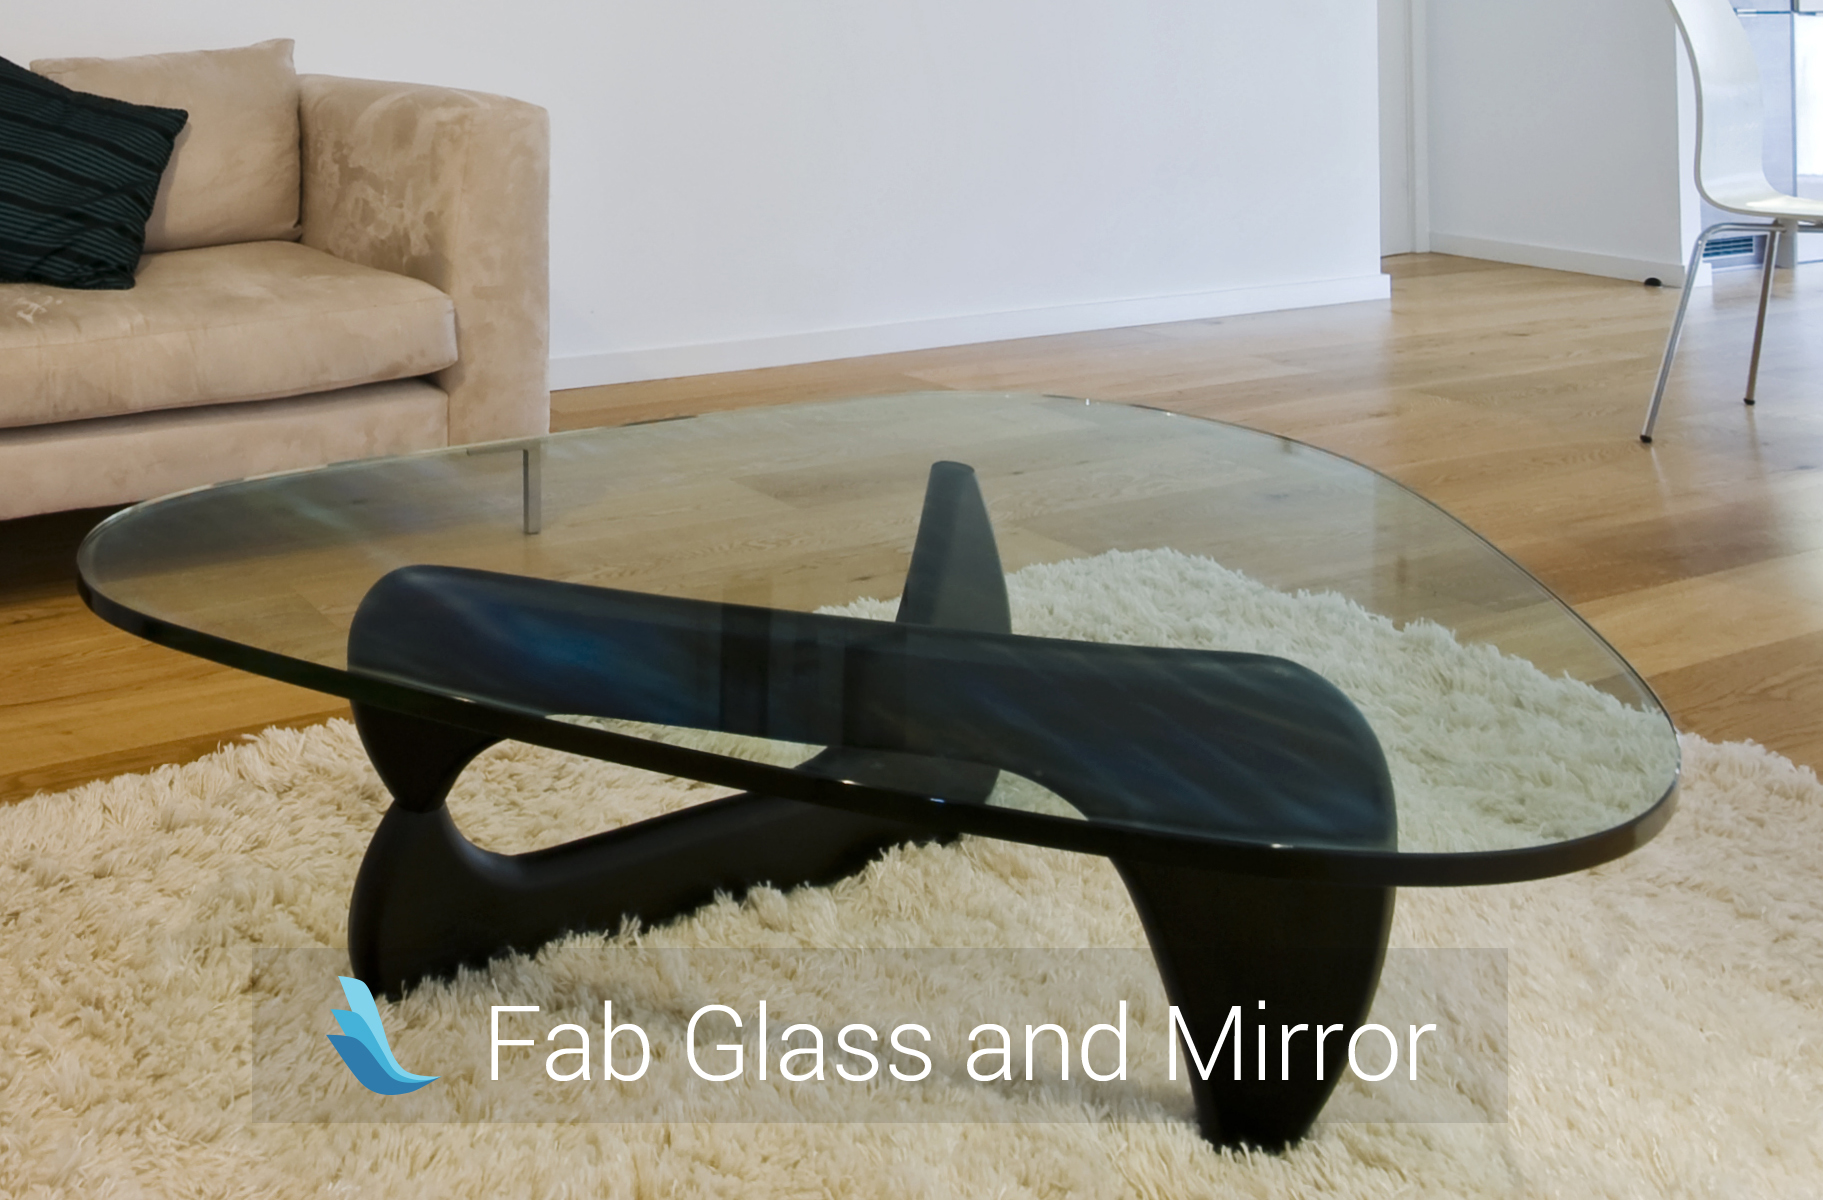 Fab Glass And Mirror Announces The Launch Of Four New Types High Quality Tables